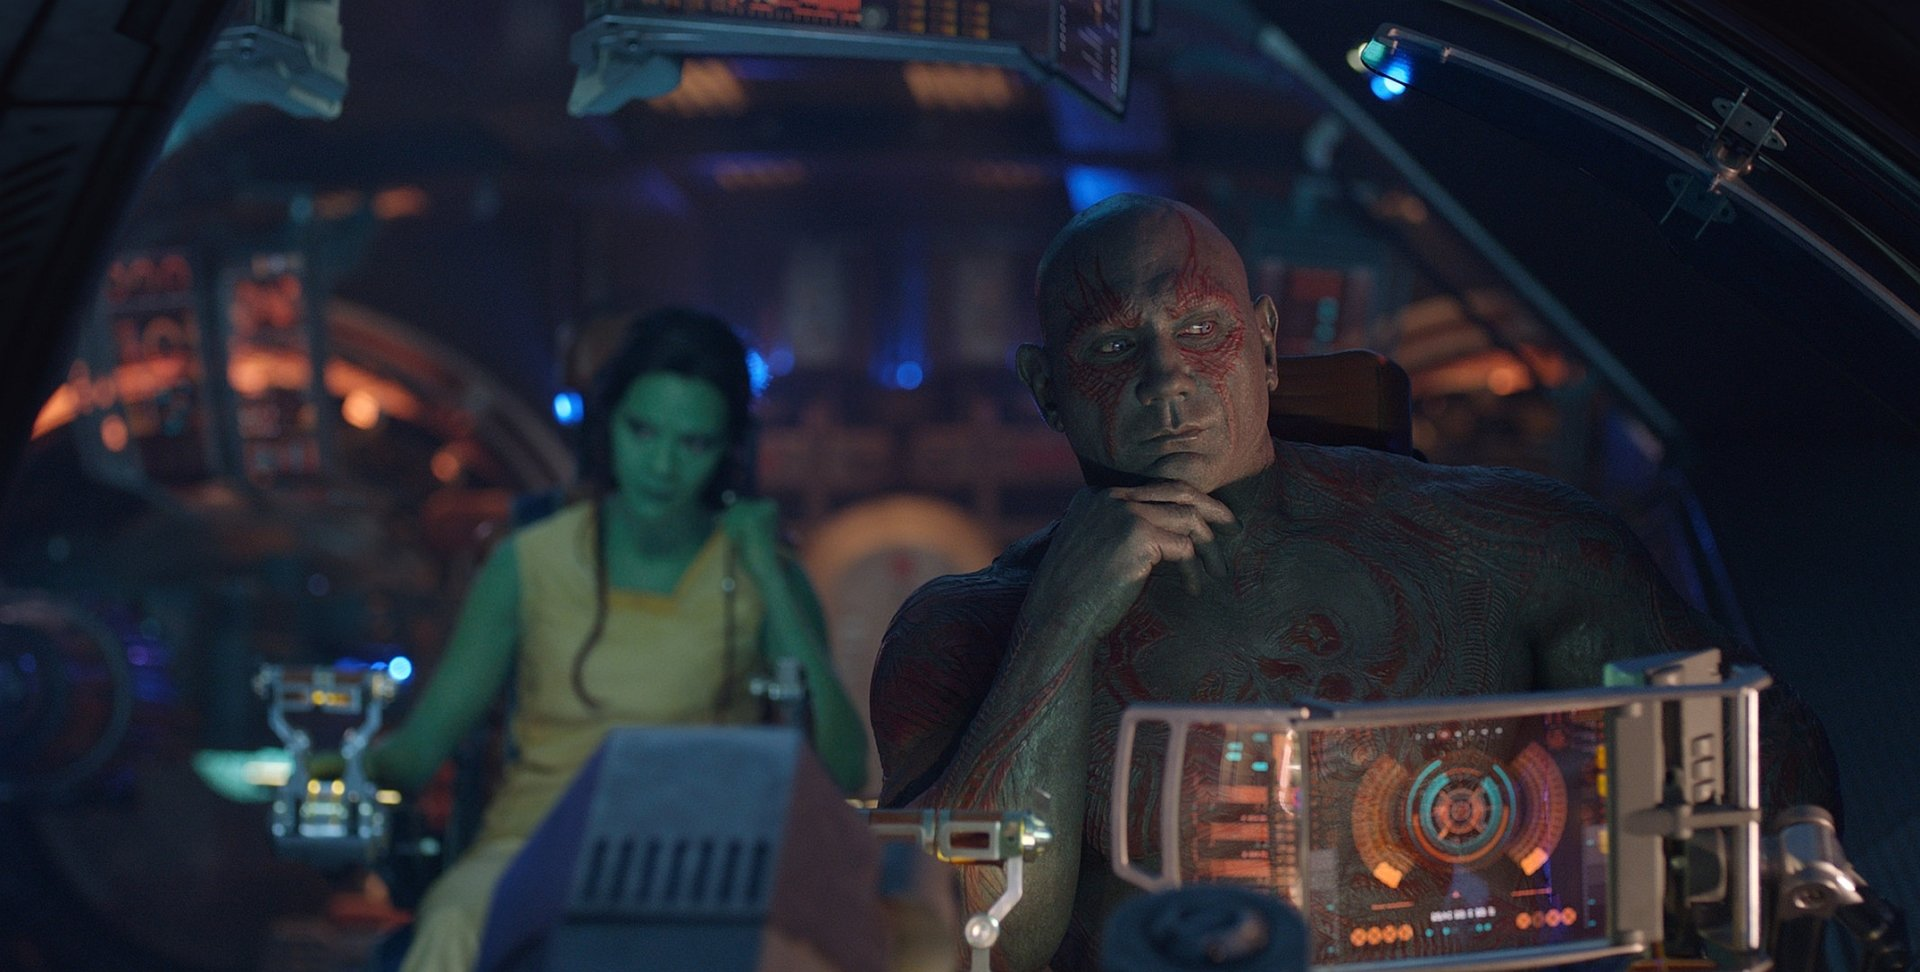 Movie - Guardians of the Galaxy  Dave Bautista Drax The Destroyer Zoe Saldana Gamora Wallpaper